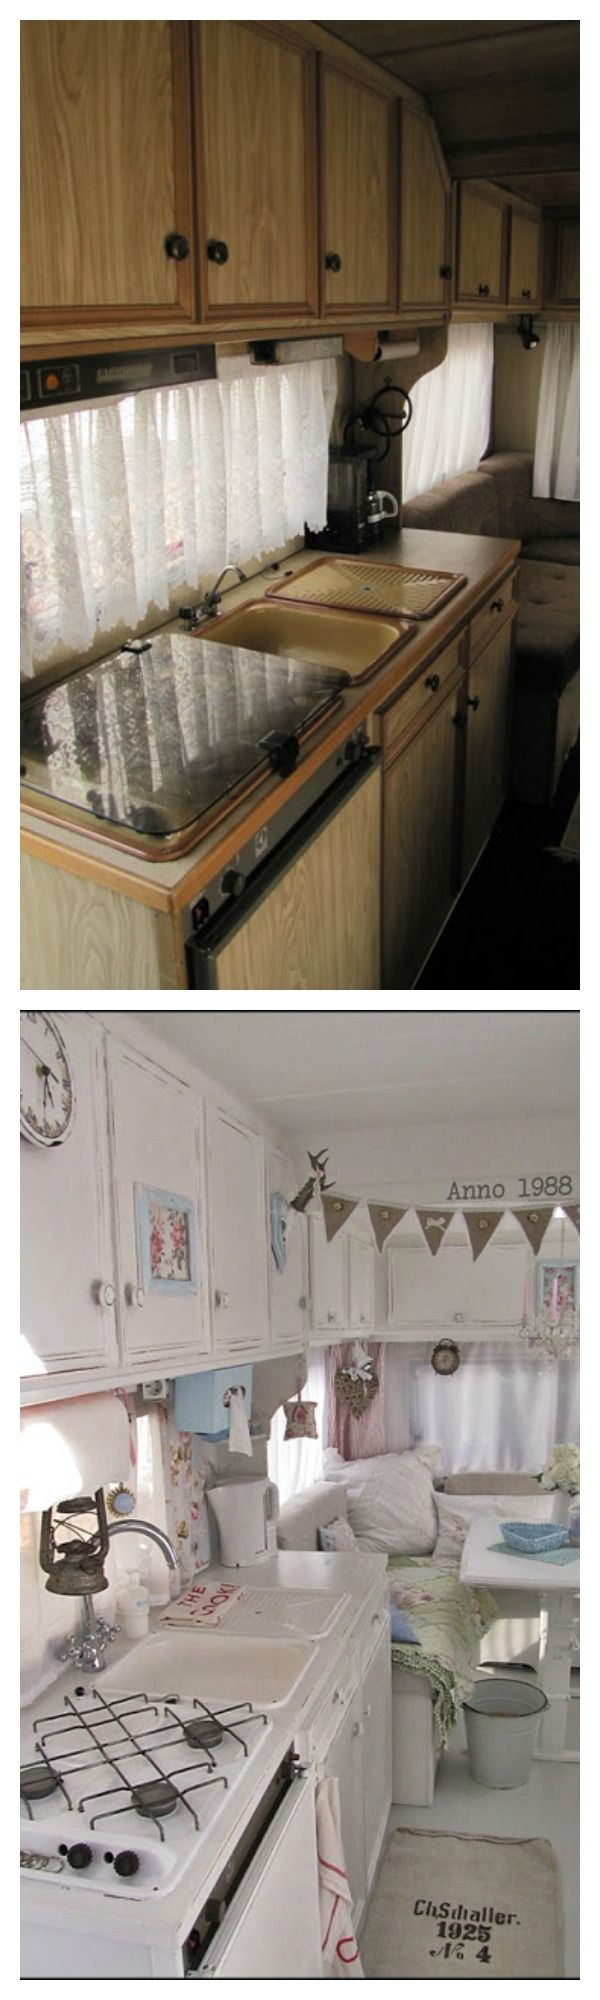 Rv camper Before and After renovation decor https://uk.pinterest.com/uksportoutdoors/camping-hiking-gear/pins/